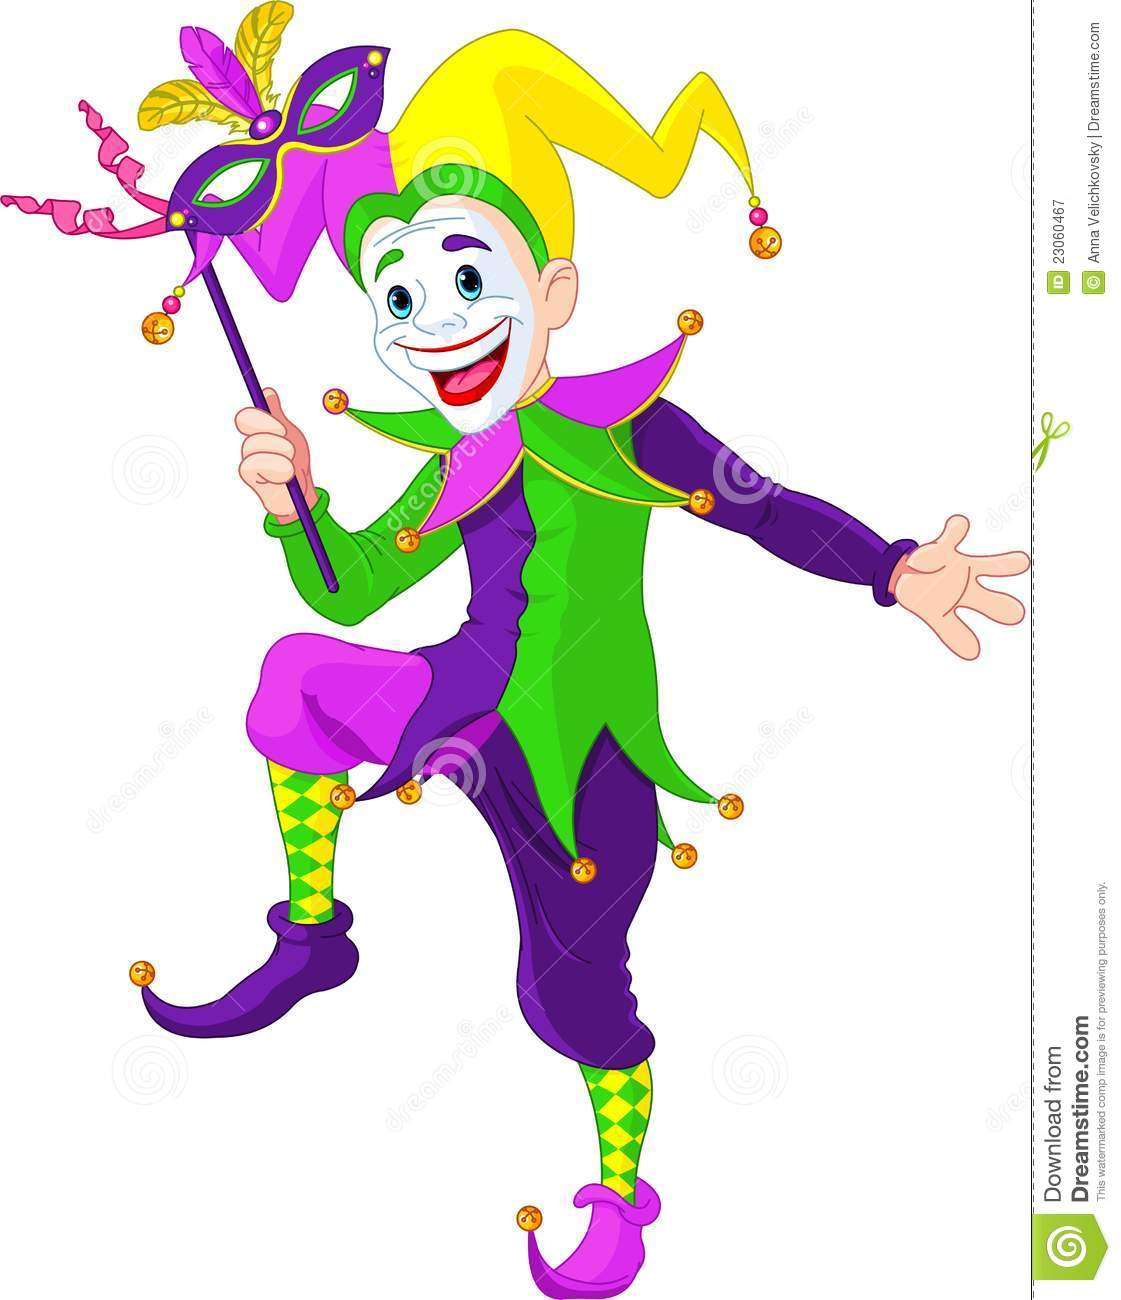 Clip art illustration of a cartoon Mardi Gras jester holding a mask.